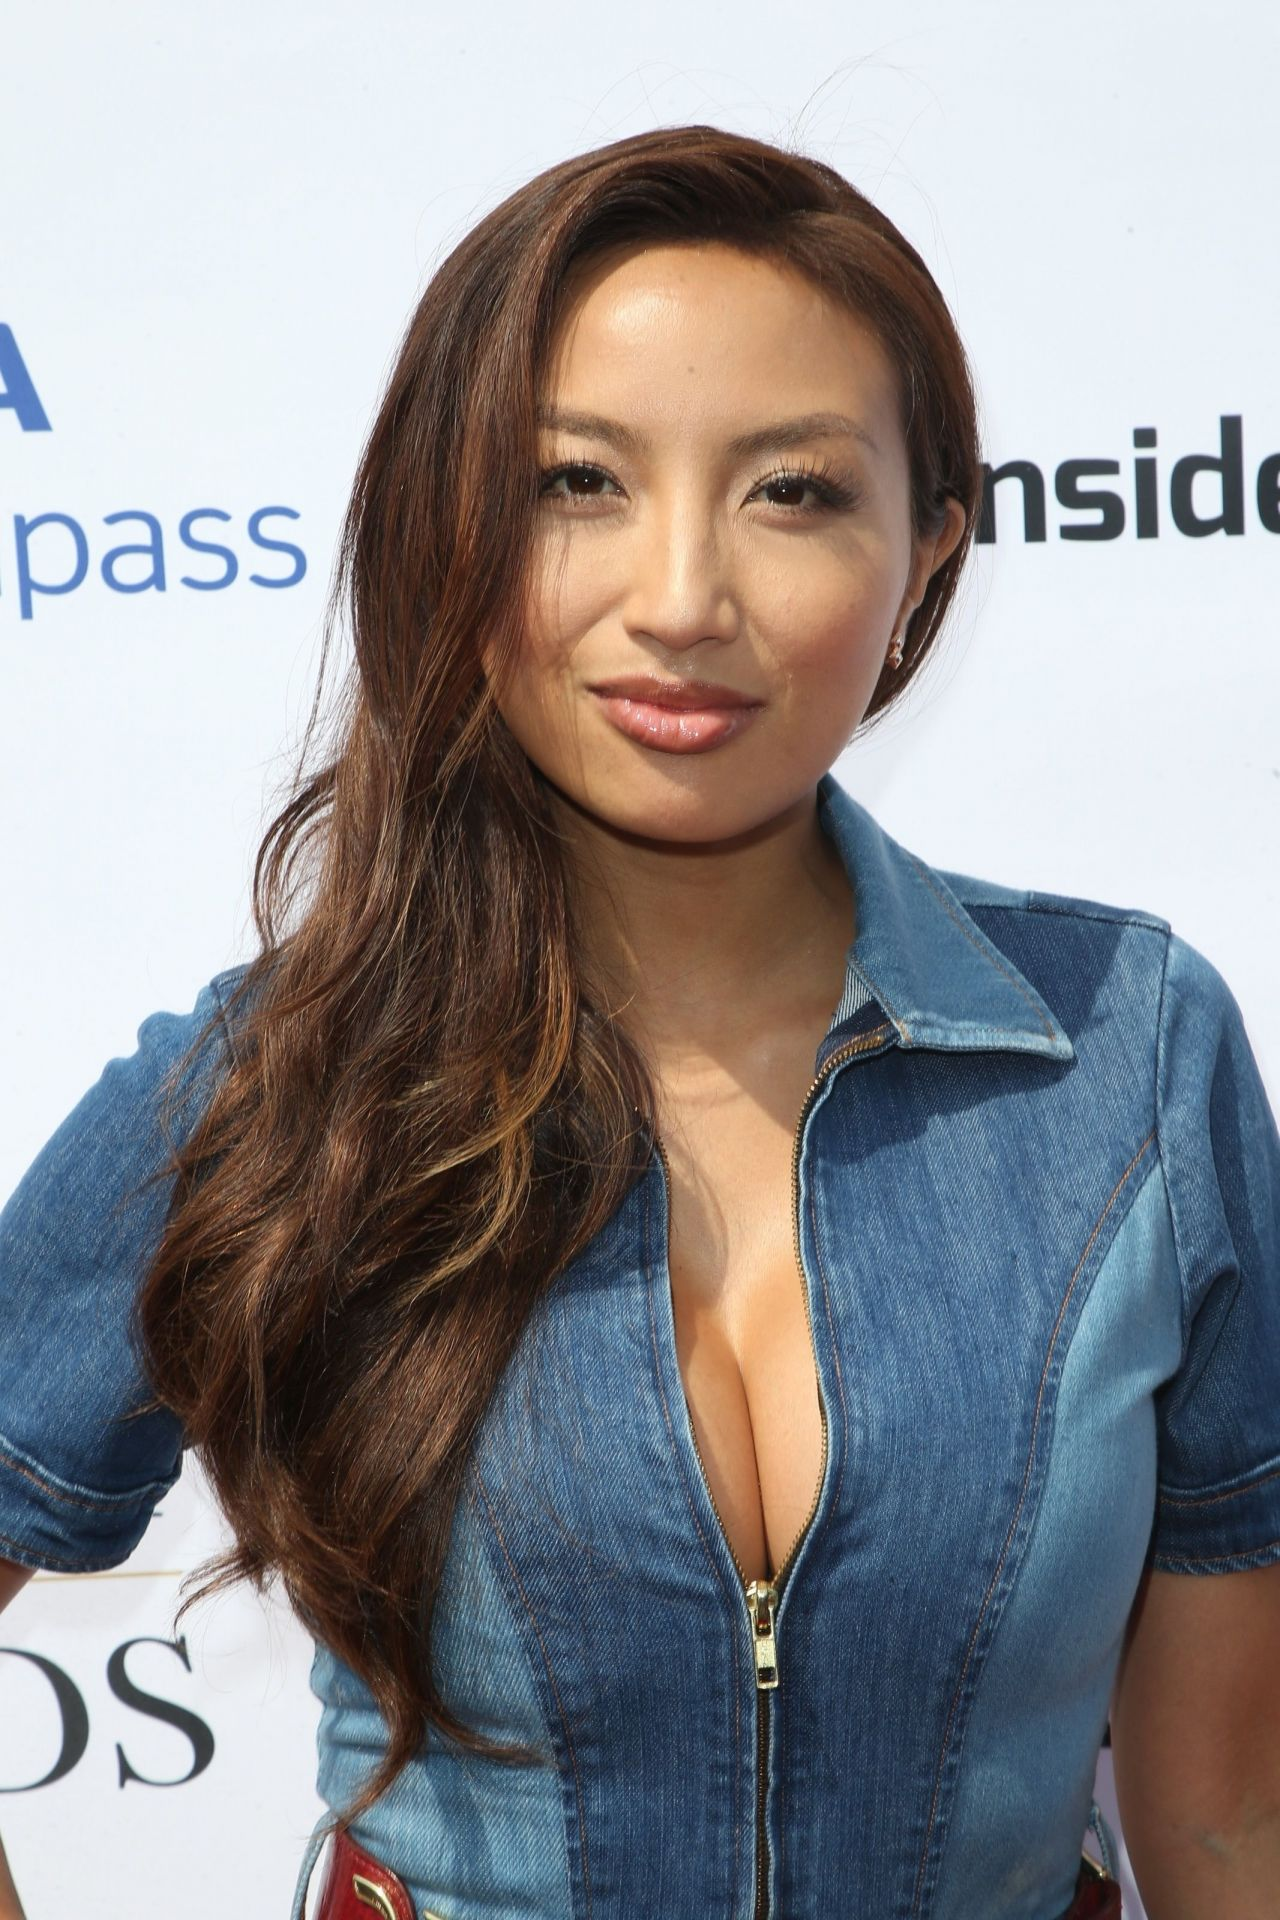 Celebrites Jeannie Mai nudes (57 foto and video), Pussy, Is a cute, Feet, cleavage 2018